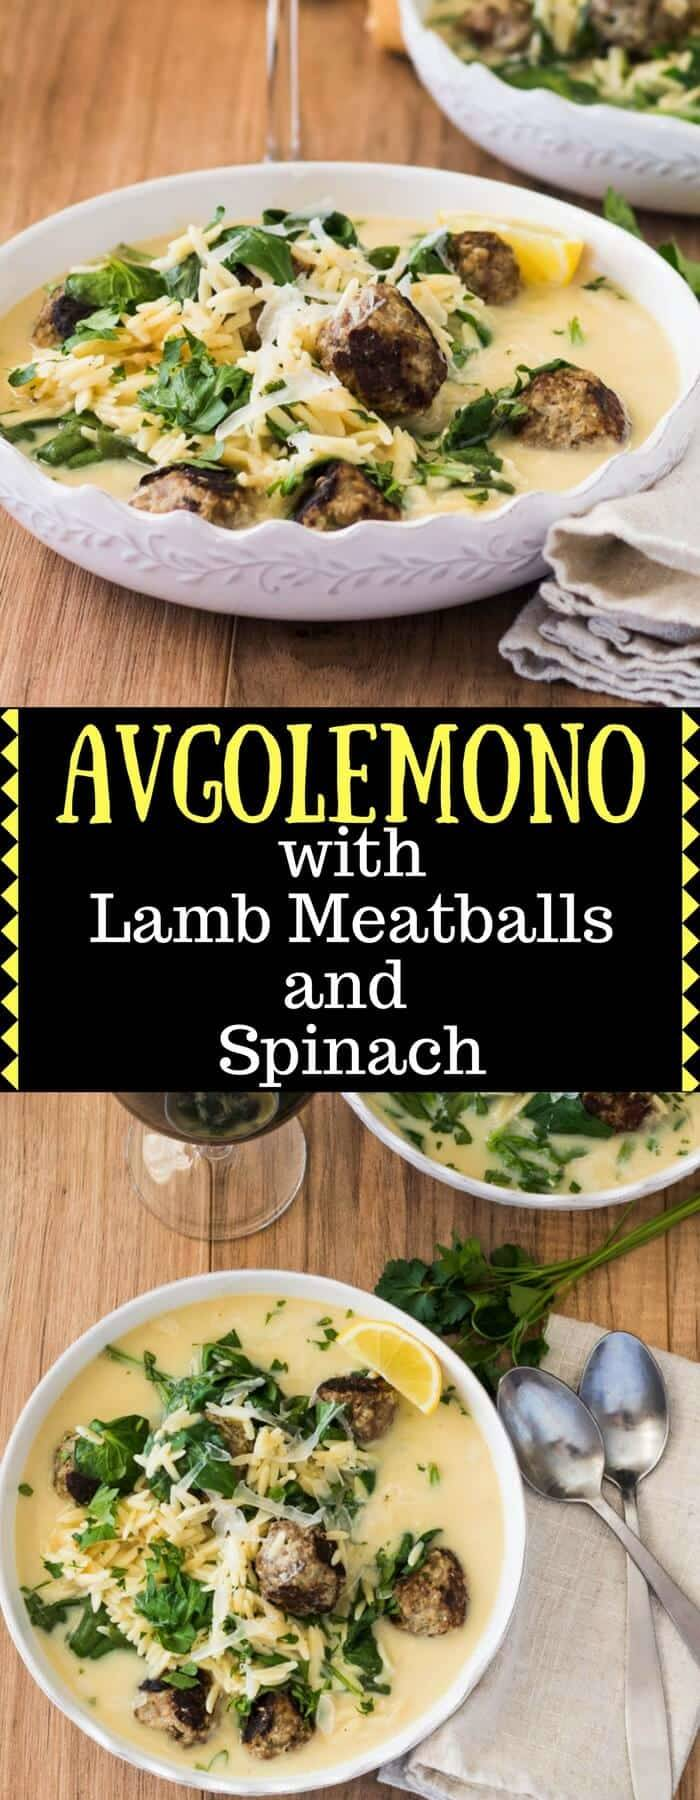 Avgolemono With Lamb Meatballs and Spinach / www.beyondmeresustenance.com